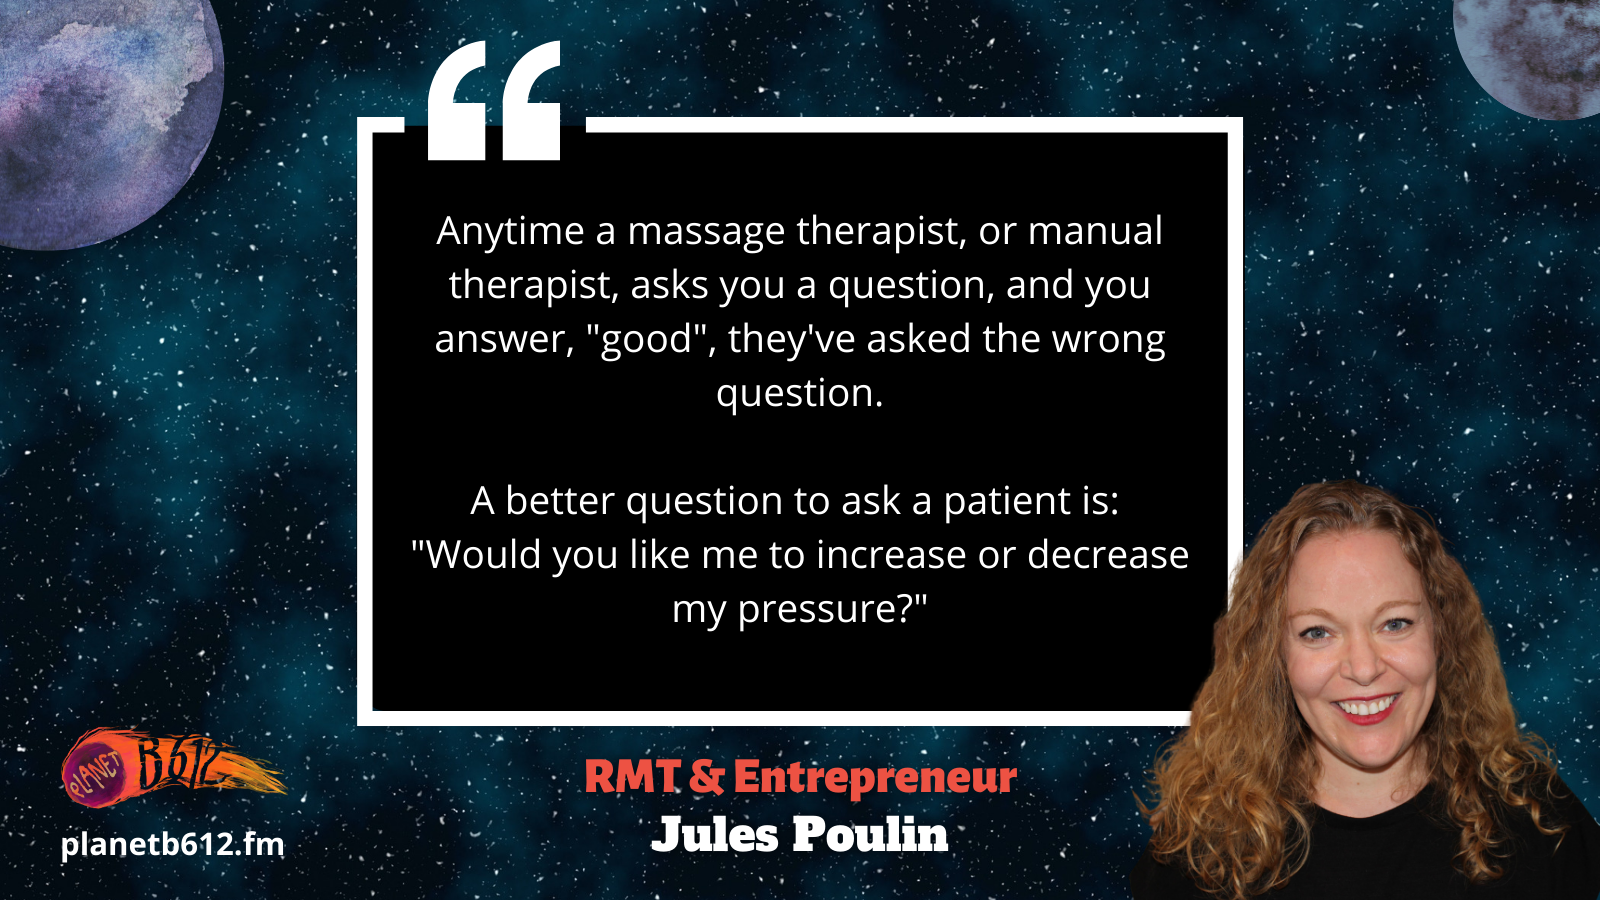 Jules Poulin talks about the importance of communication in massage therapy.